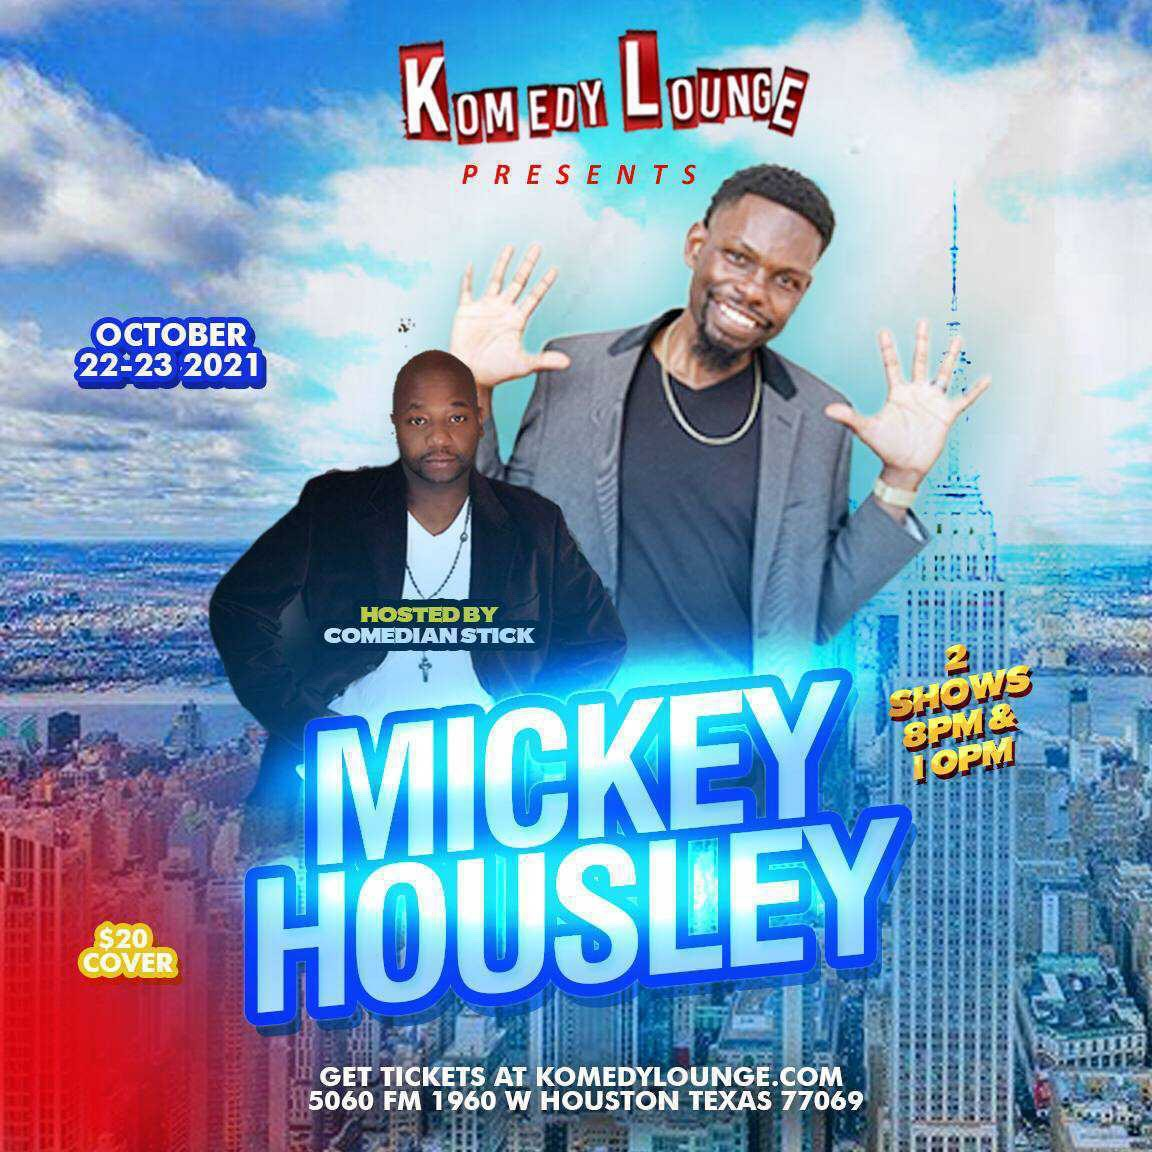 Mickey Housley 10pm  on Oct 23, 22:00@Komedy Lounge - Buy tickets and Get information on komedylounge.com